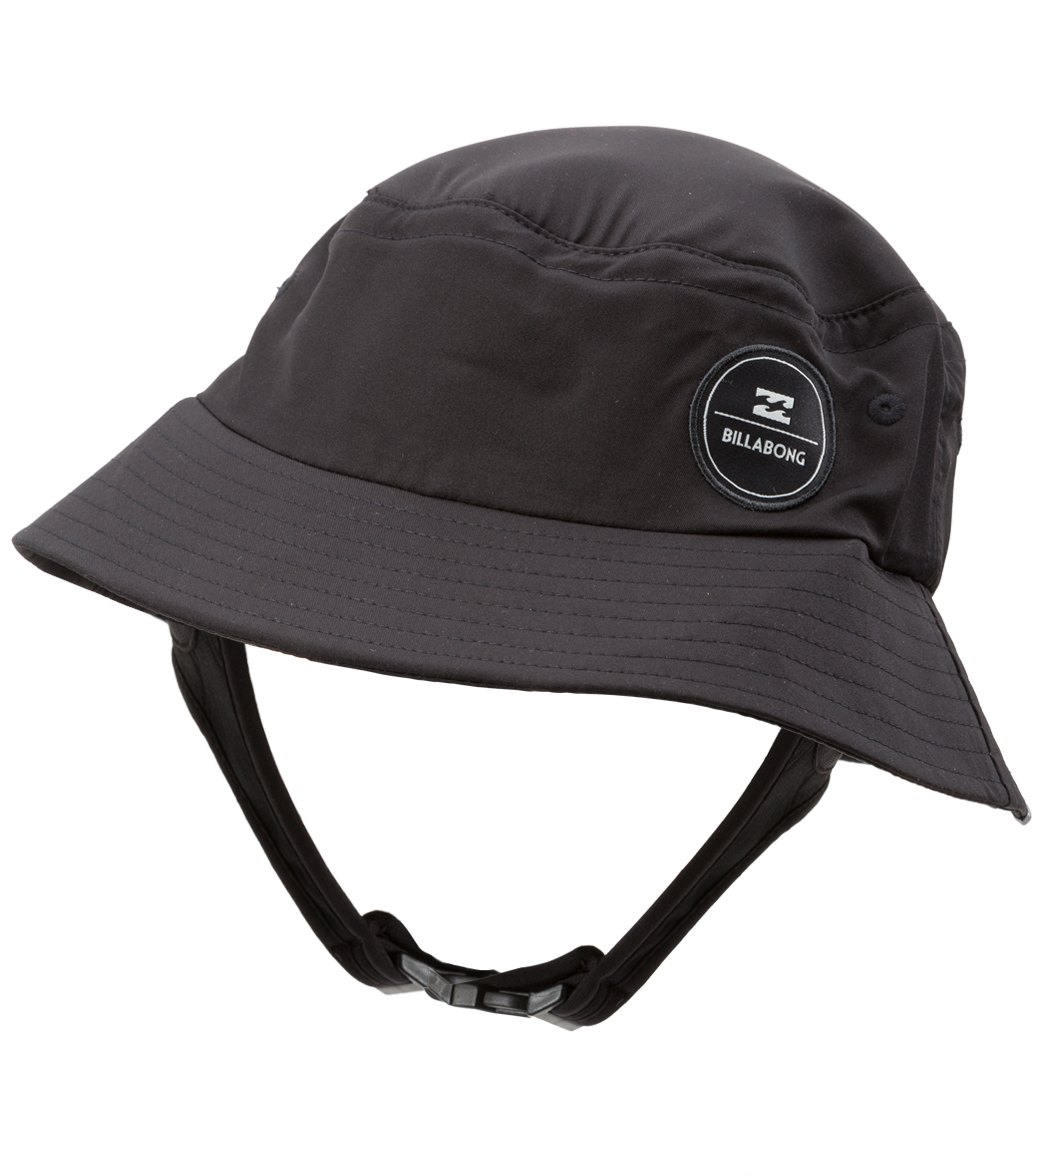 2e8b6ffe Billabong Men's Supreme Surf Bucket Hat at SwimOutlet.com